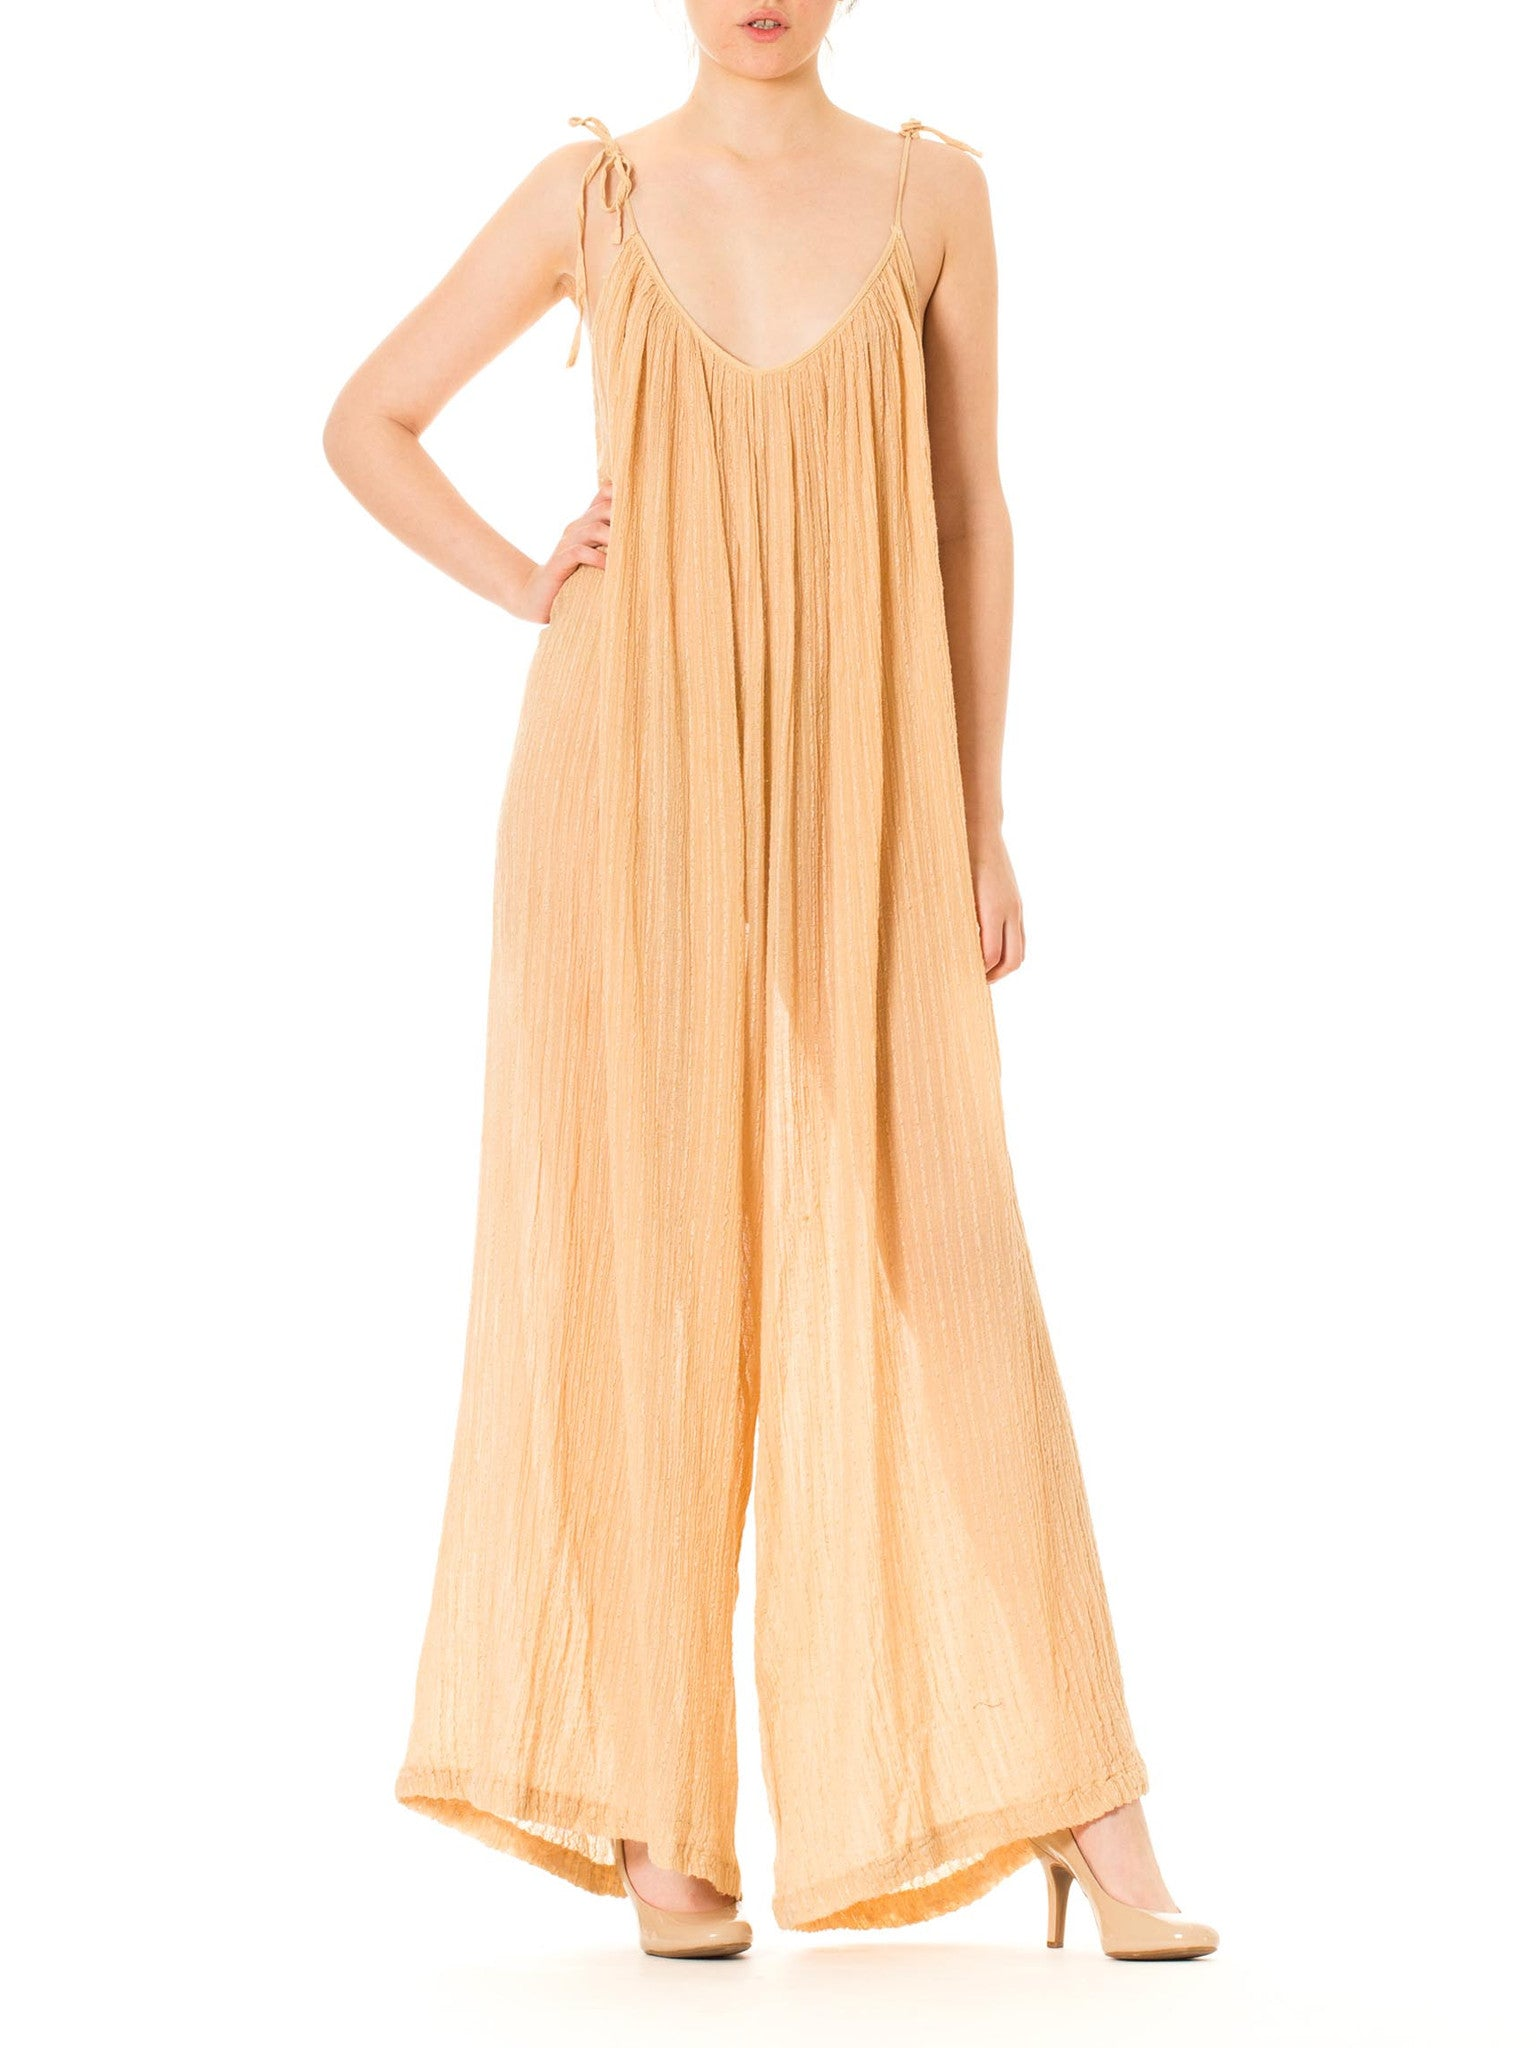 1970s Boho Draped Cotton Gauze Shoulder Strapped Palazzo Jumpsuit